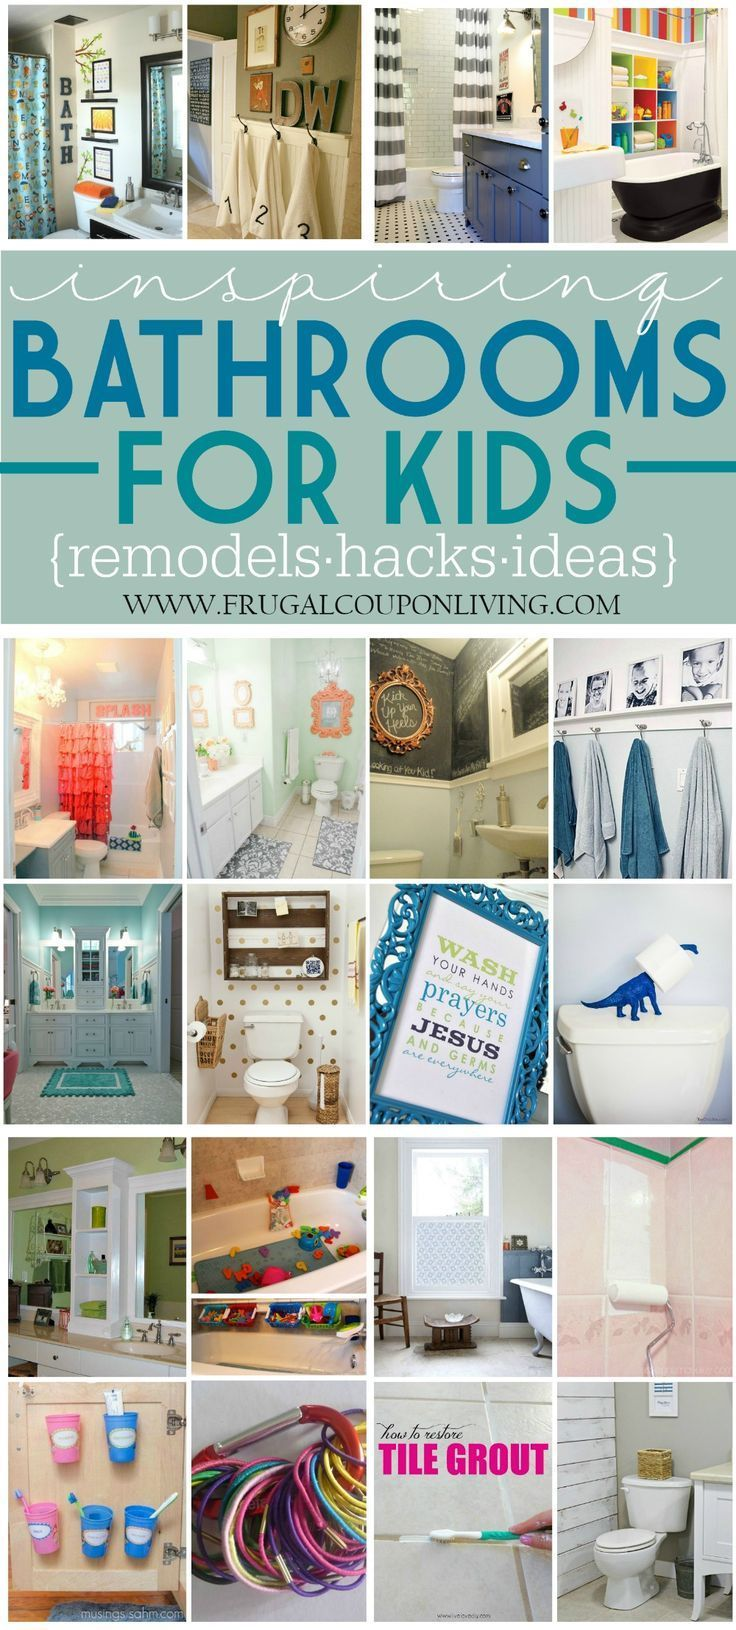 10 best color images on Pinterest | Color palettes, Color schemes ...